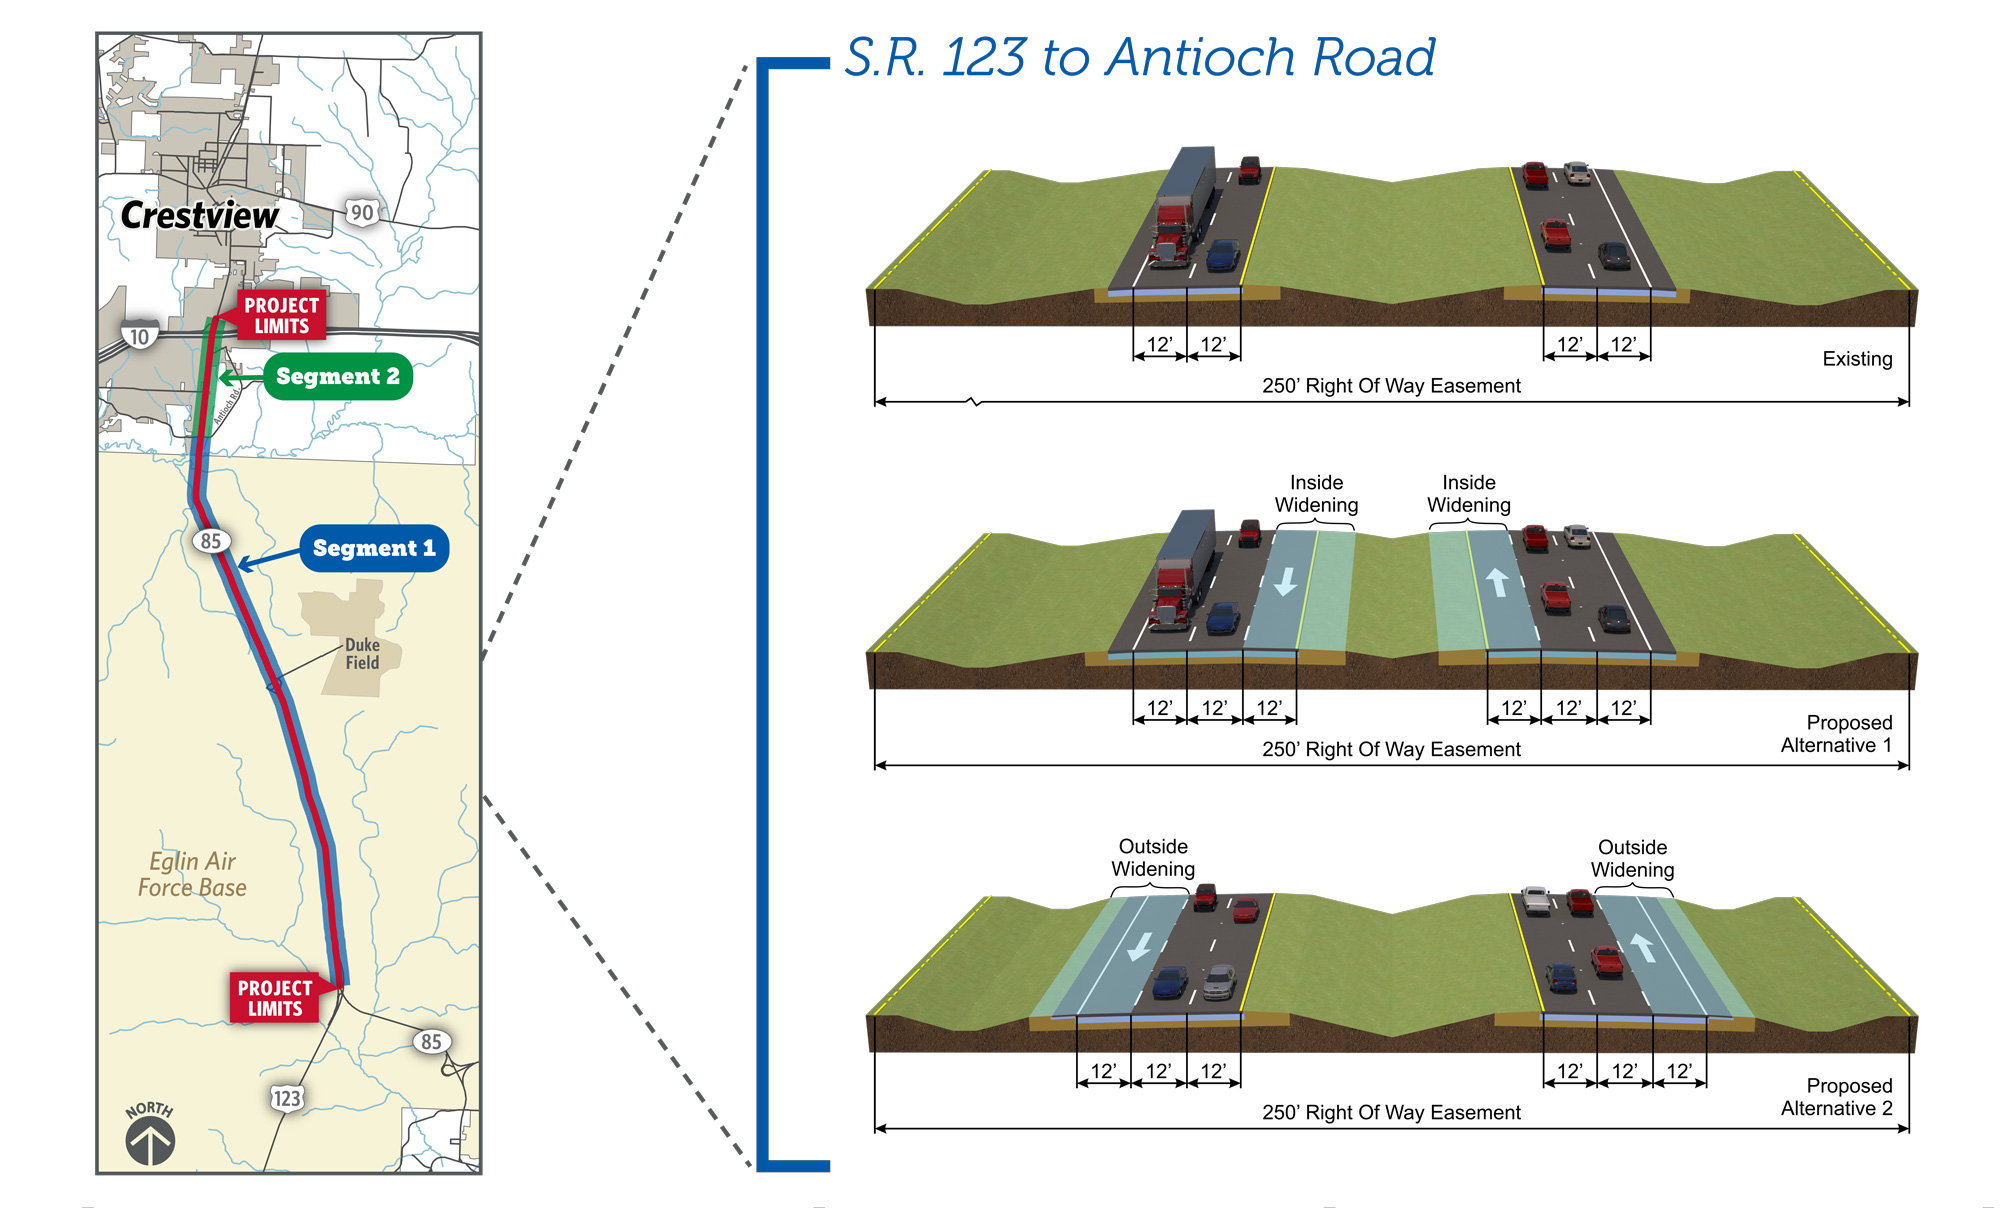 SR 123 to Antioch Rd: add another 12-foot lane to each direction of traffic on either the inside lanes of the highway or the outside lanes.